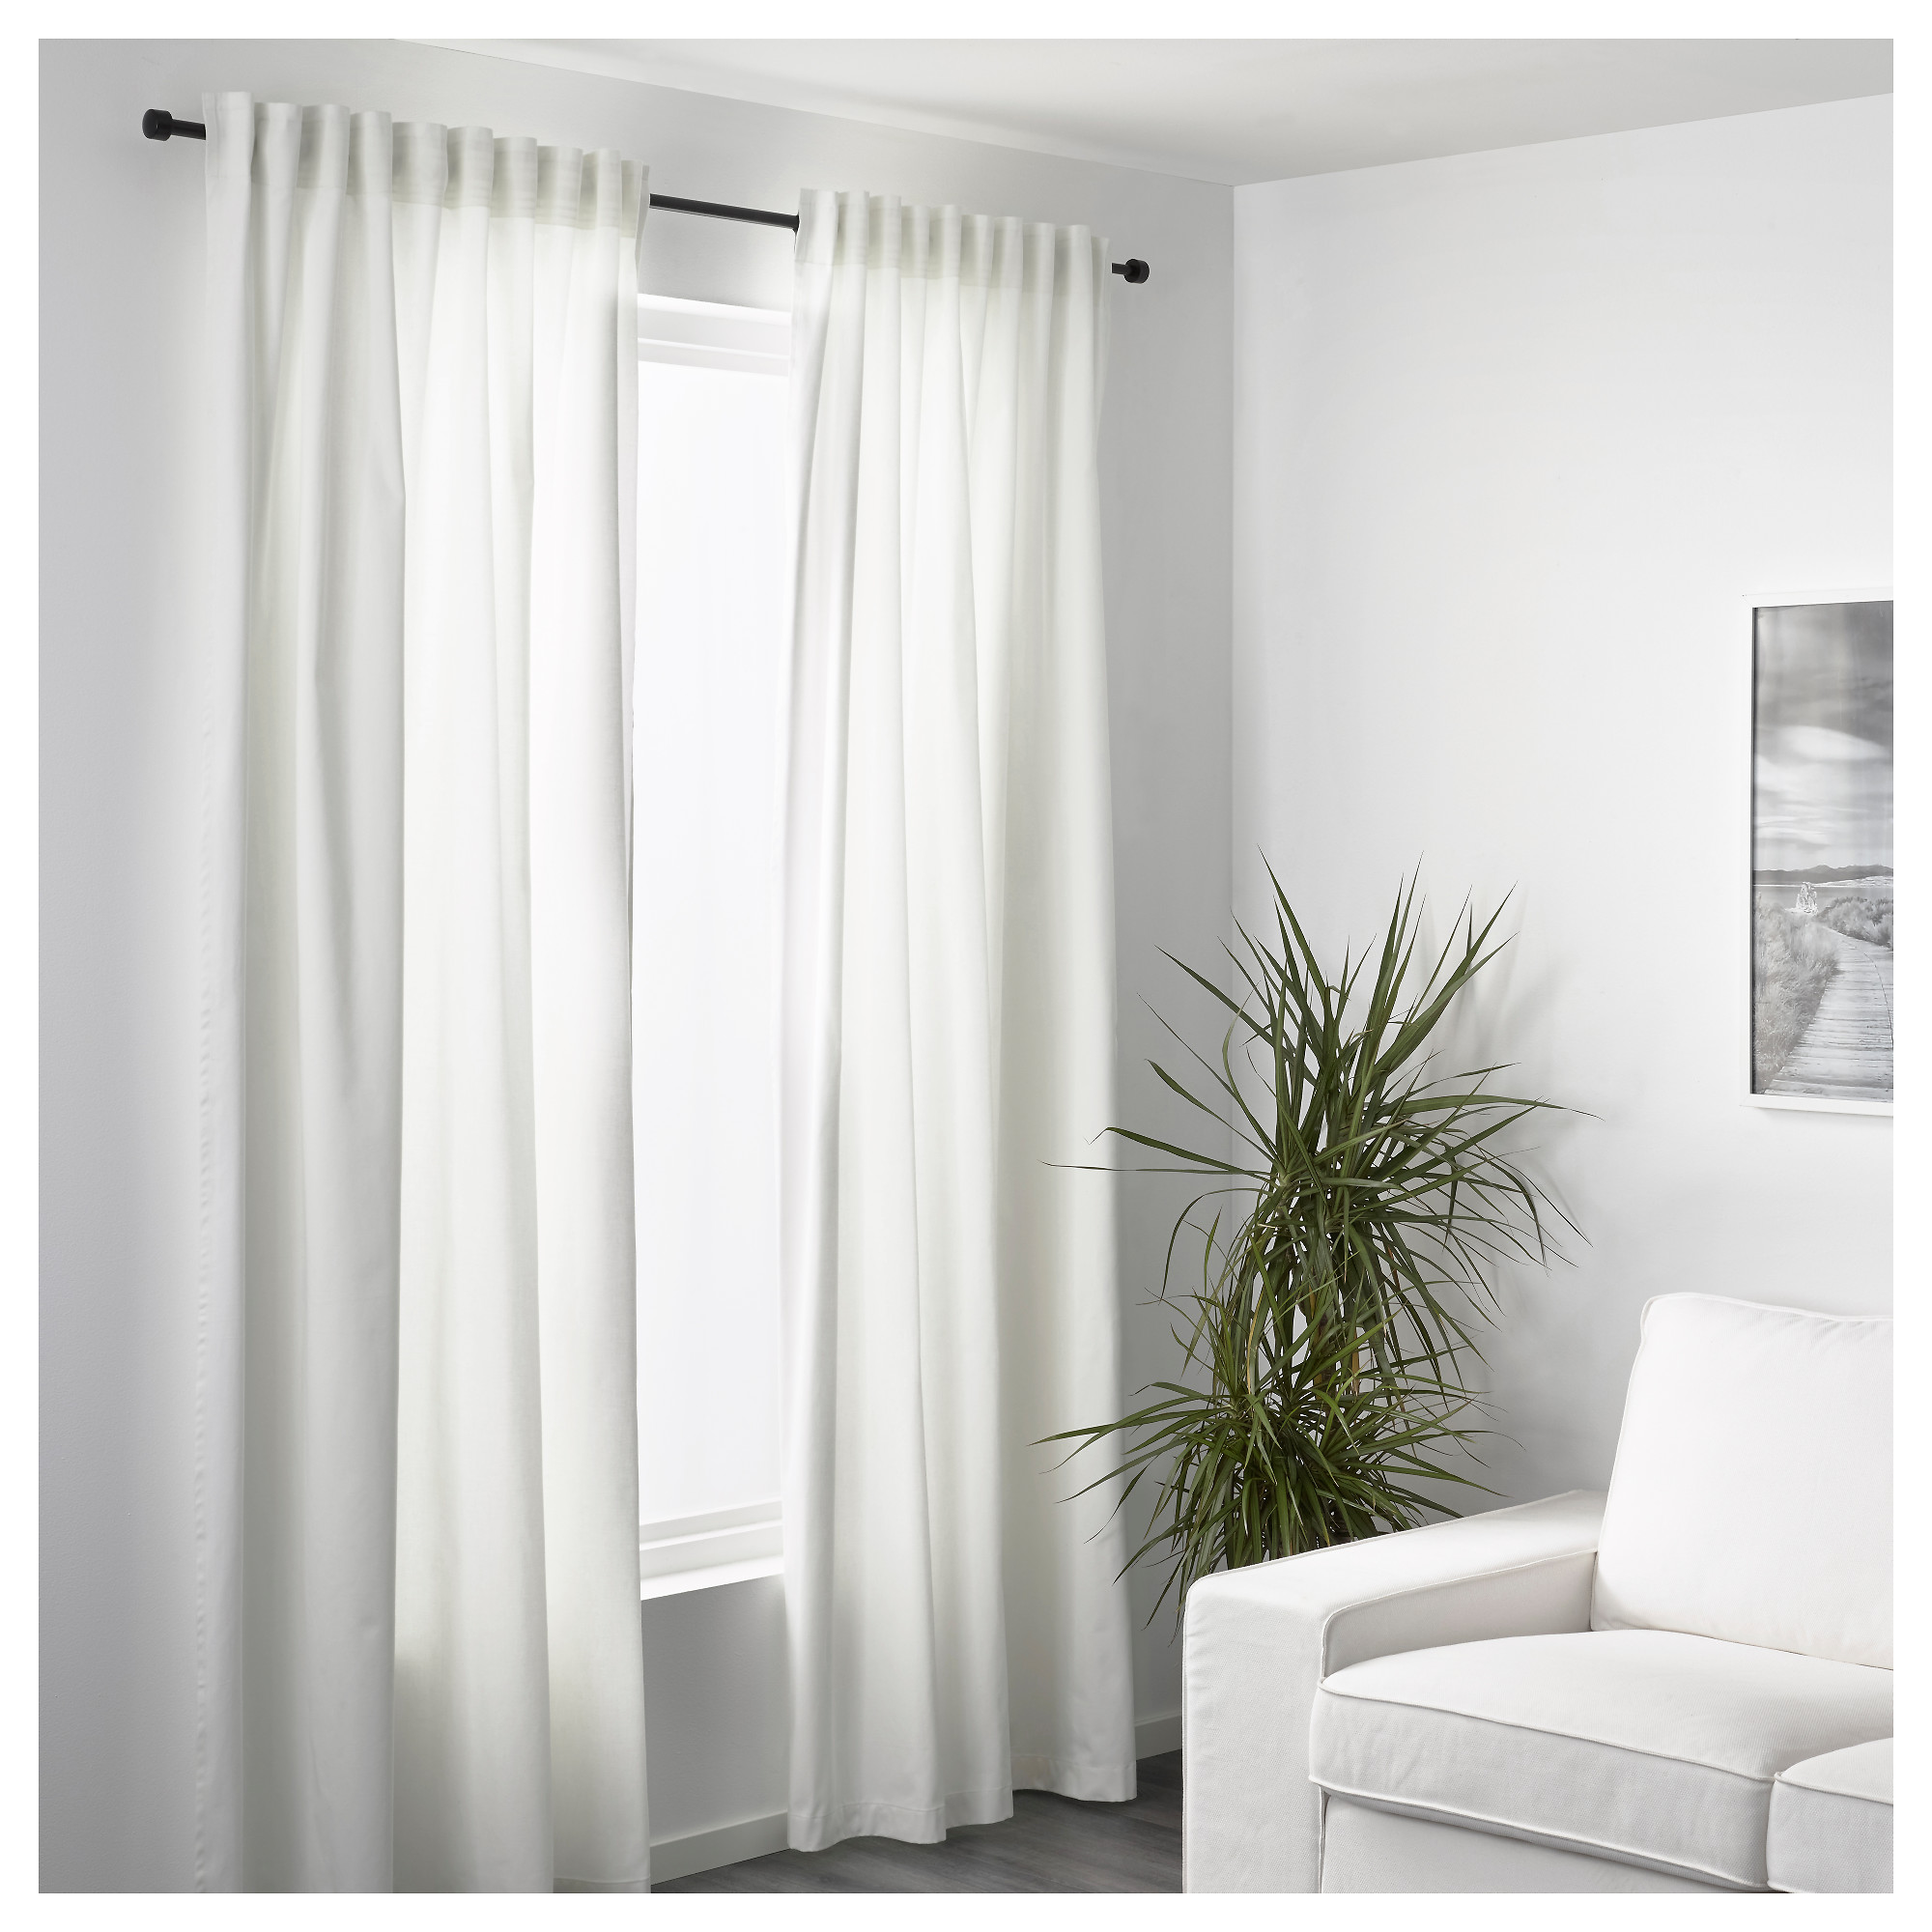 MERETE Curtains, 1 pair - 57x98 \